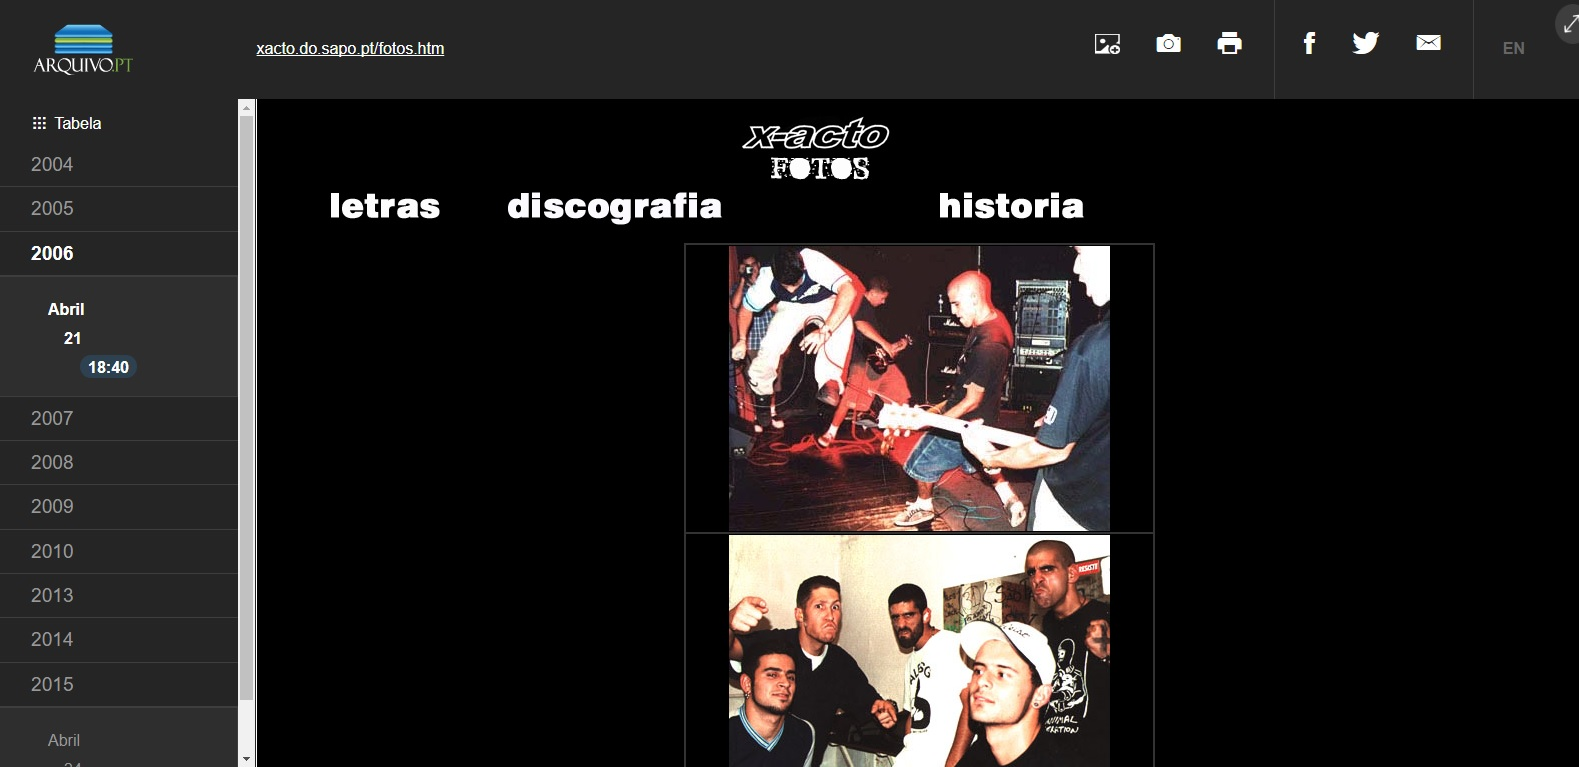 The Study of punk culture through the Portuguese Web Archive